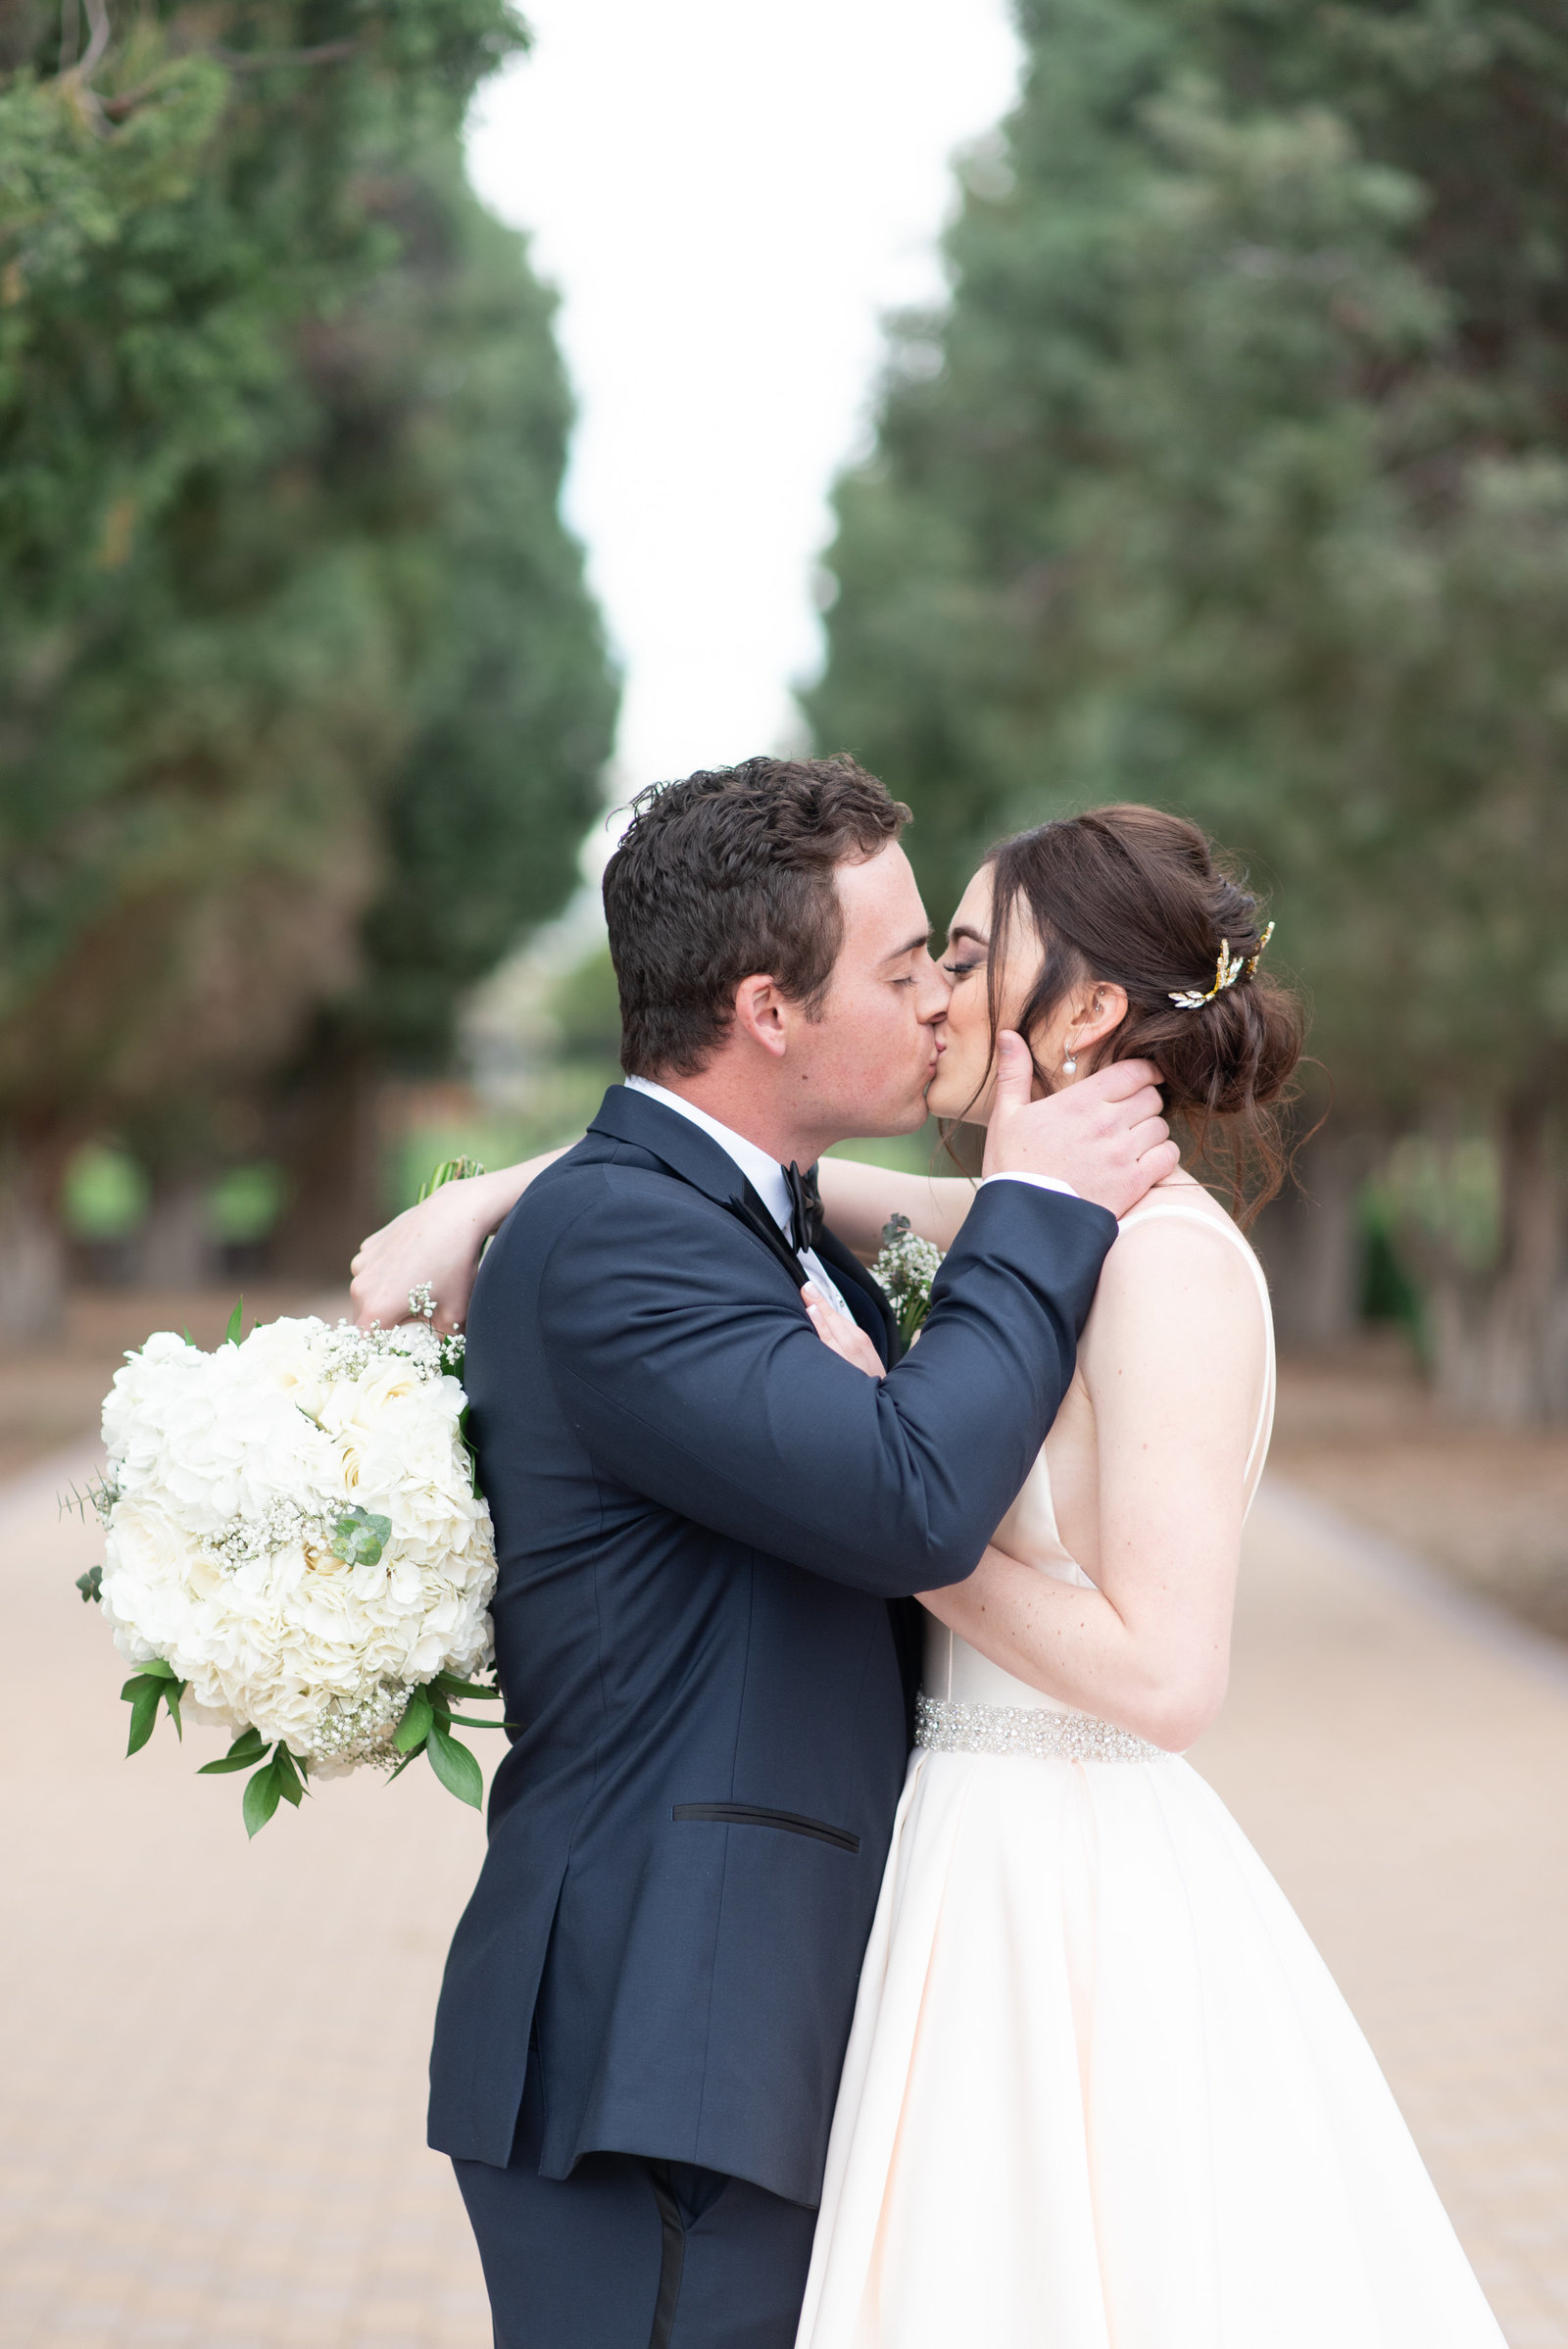 Classic wedding portraits of bride and groom at Highlands Ranch Mansion